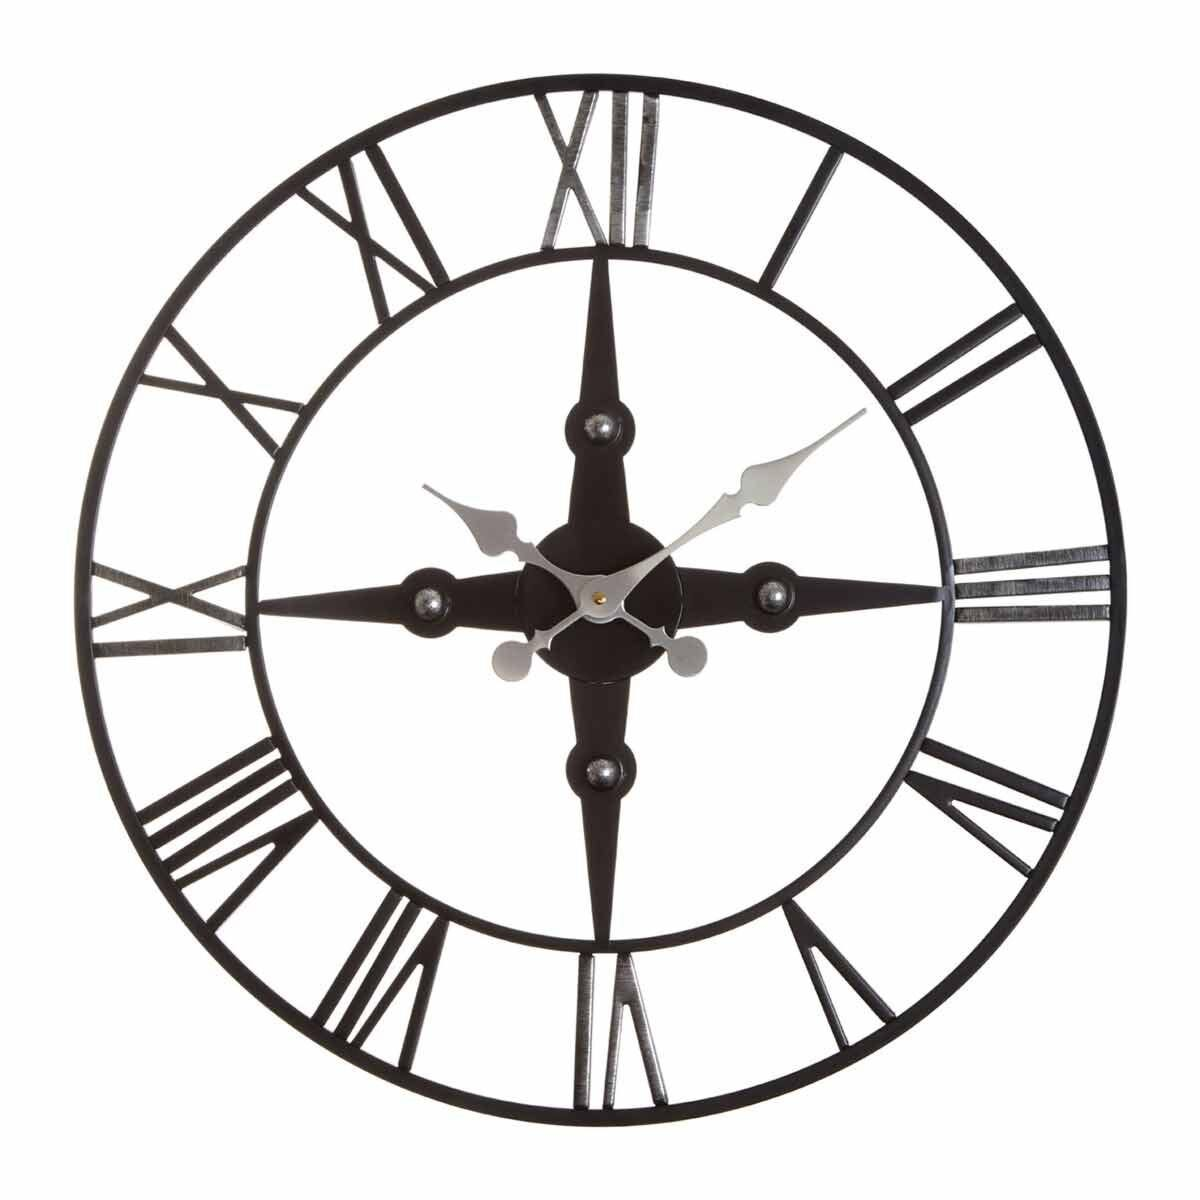 Premier Housewares Vitus Metal Wall Clock 59cm